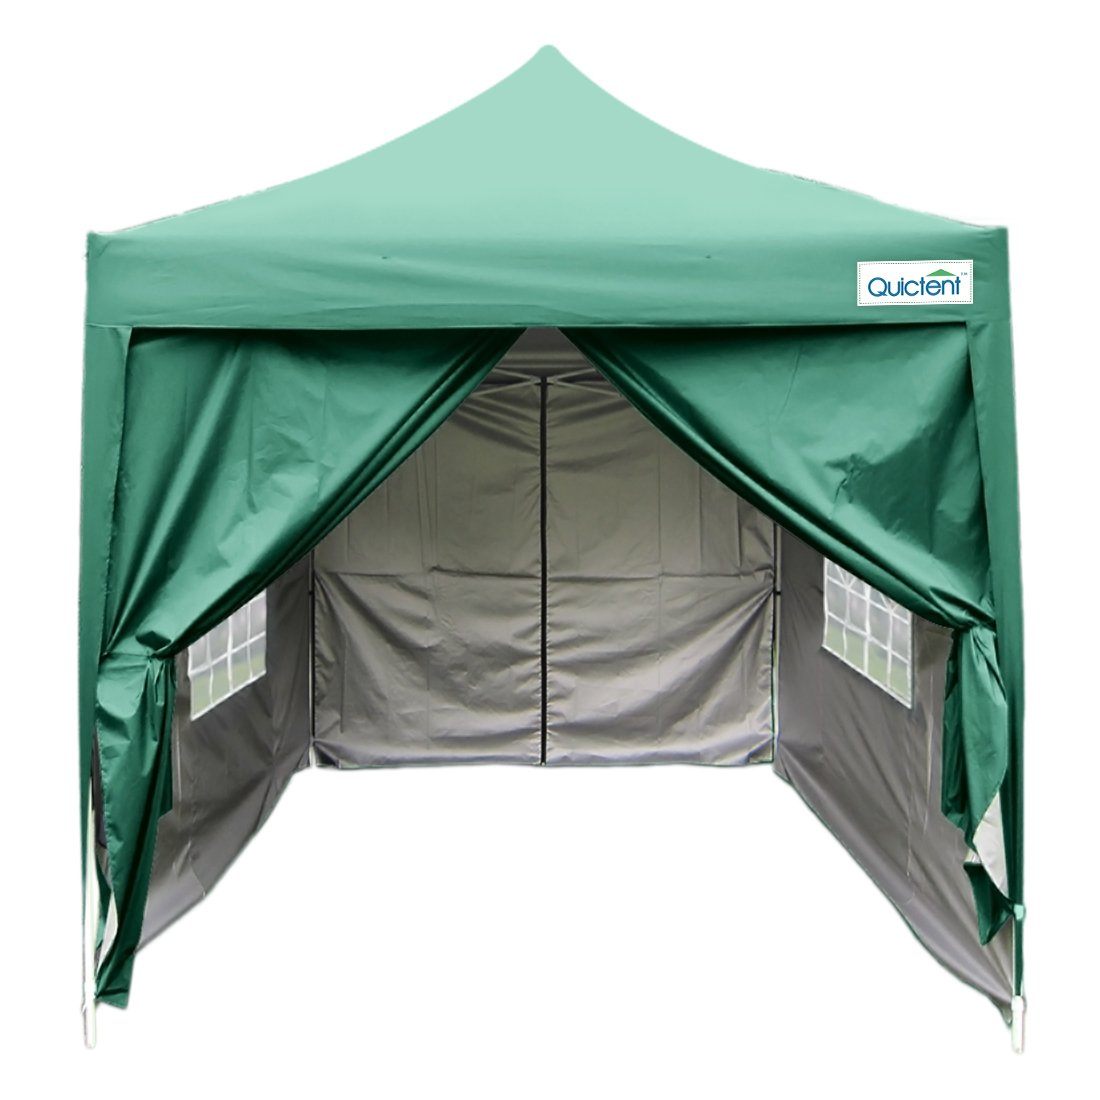 Amazon.com Quictent Silvox Waterproof 6.6x6.6u0027 EZ Pop Up Canopy Commercial Gazebo Party Tent Green Portable Pyramid-roofed Style Removable Sides With ...  sc 1 st  Amazon.com & Amazon.com: Quictent Silvox Waterproof 6.6x6.6u0027 EZ Pop Up Canopy ...